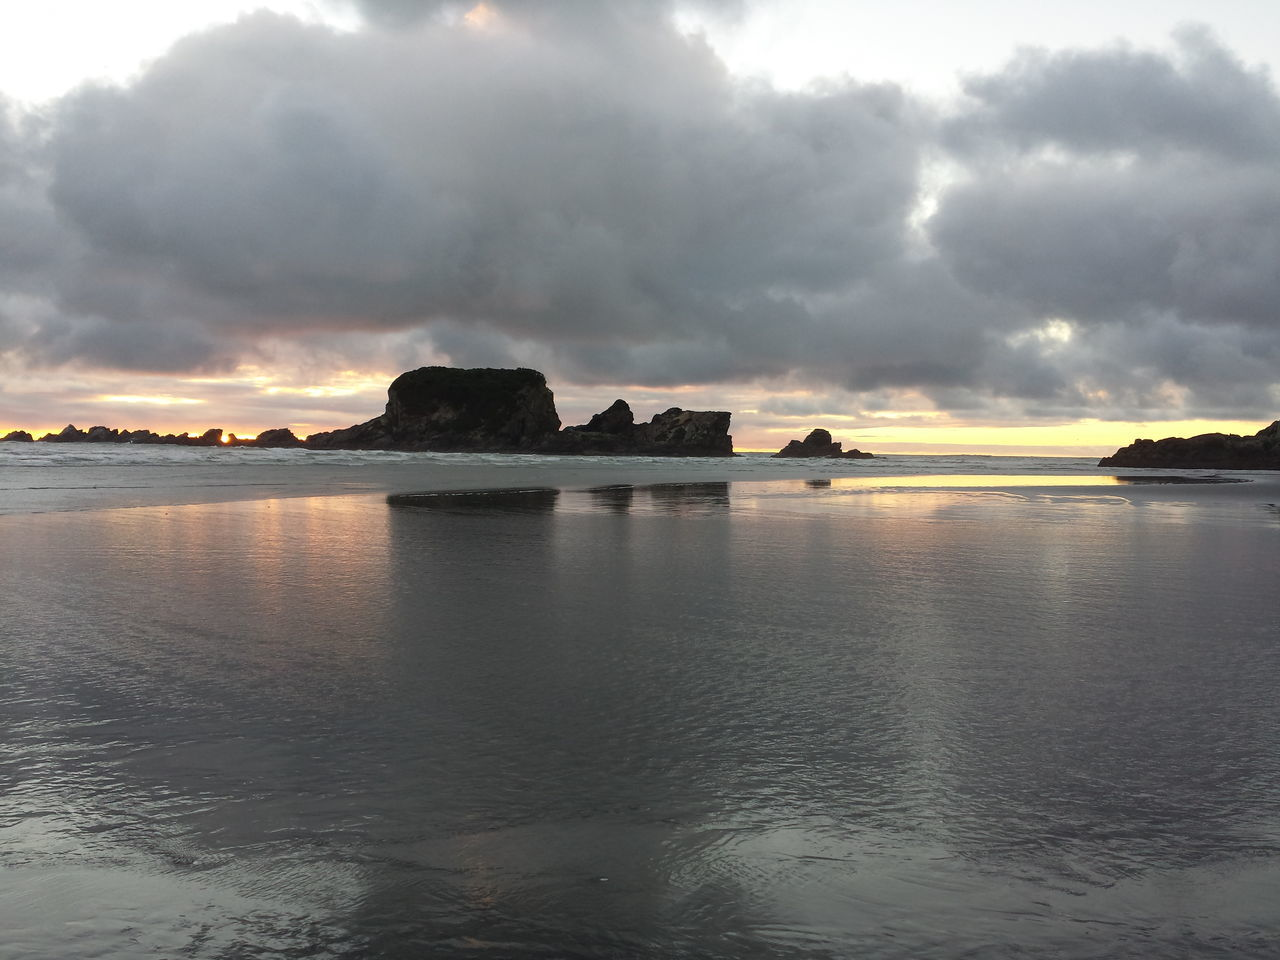 Scenic View Of Shore Against Cloudy Sky During Sunset